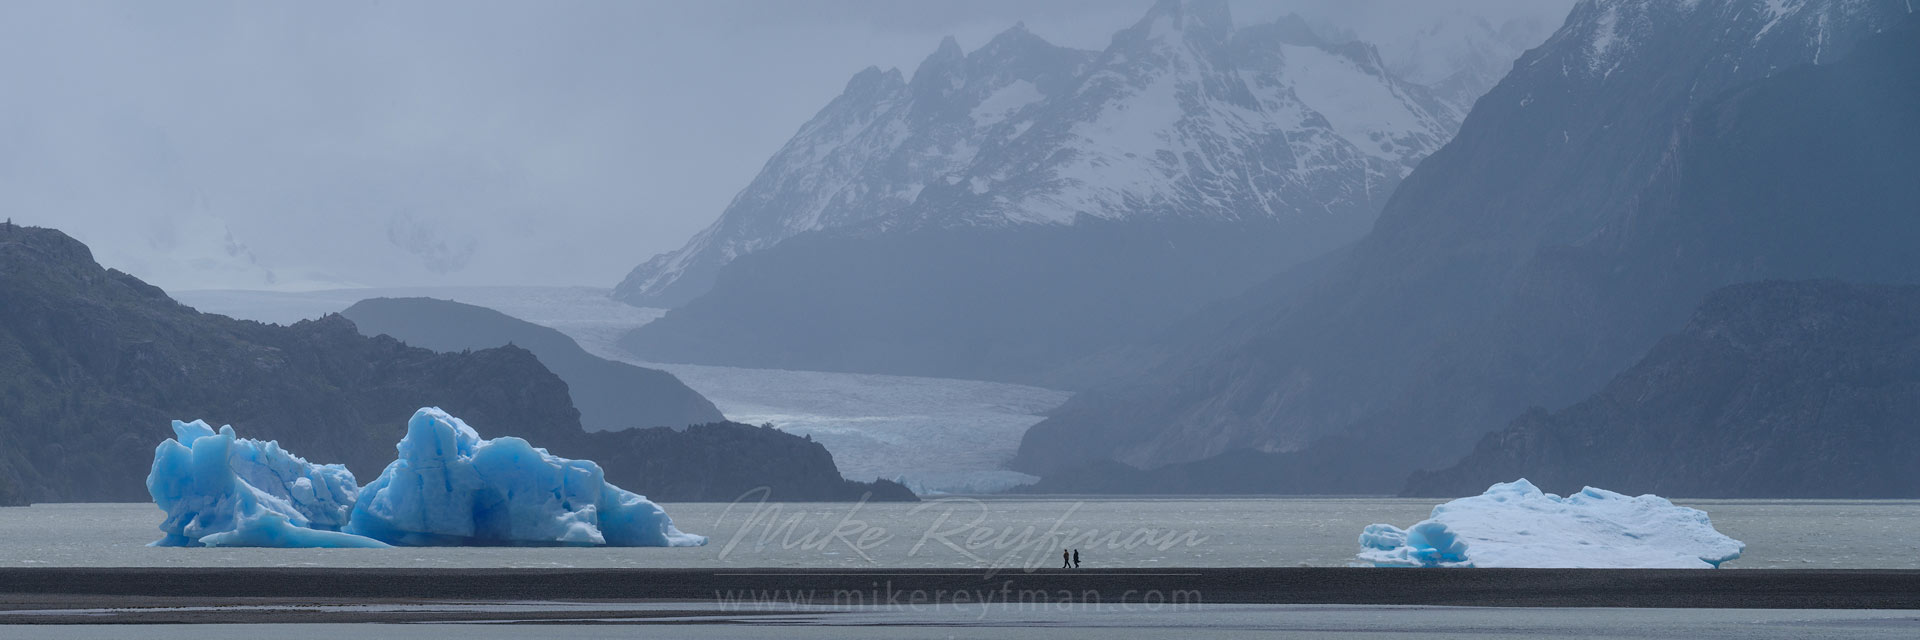 Tourists exploring icebergs in Lago Grey with Grey Glacier on the background. Torres del Paine National Park, Ultima Esperanza Province, Magallanes and Antartica Chilena Region XII, Patagonia, Chile. - Torres-Del-Paine-National-Park-Patagonia-Chile - Mike Reyfman Photography